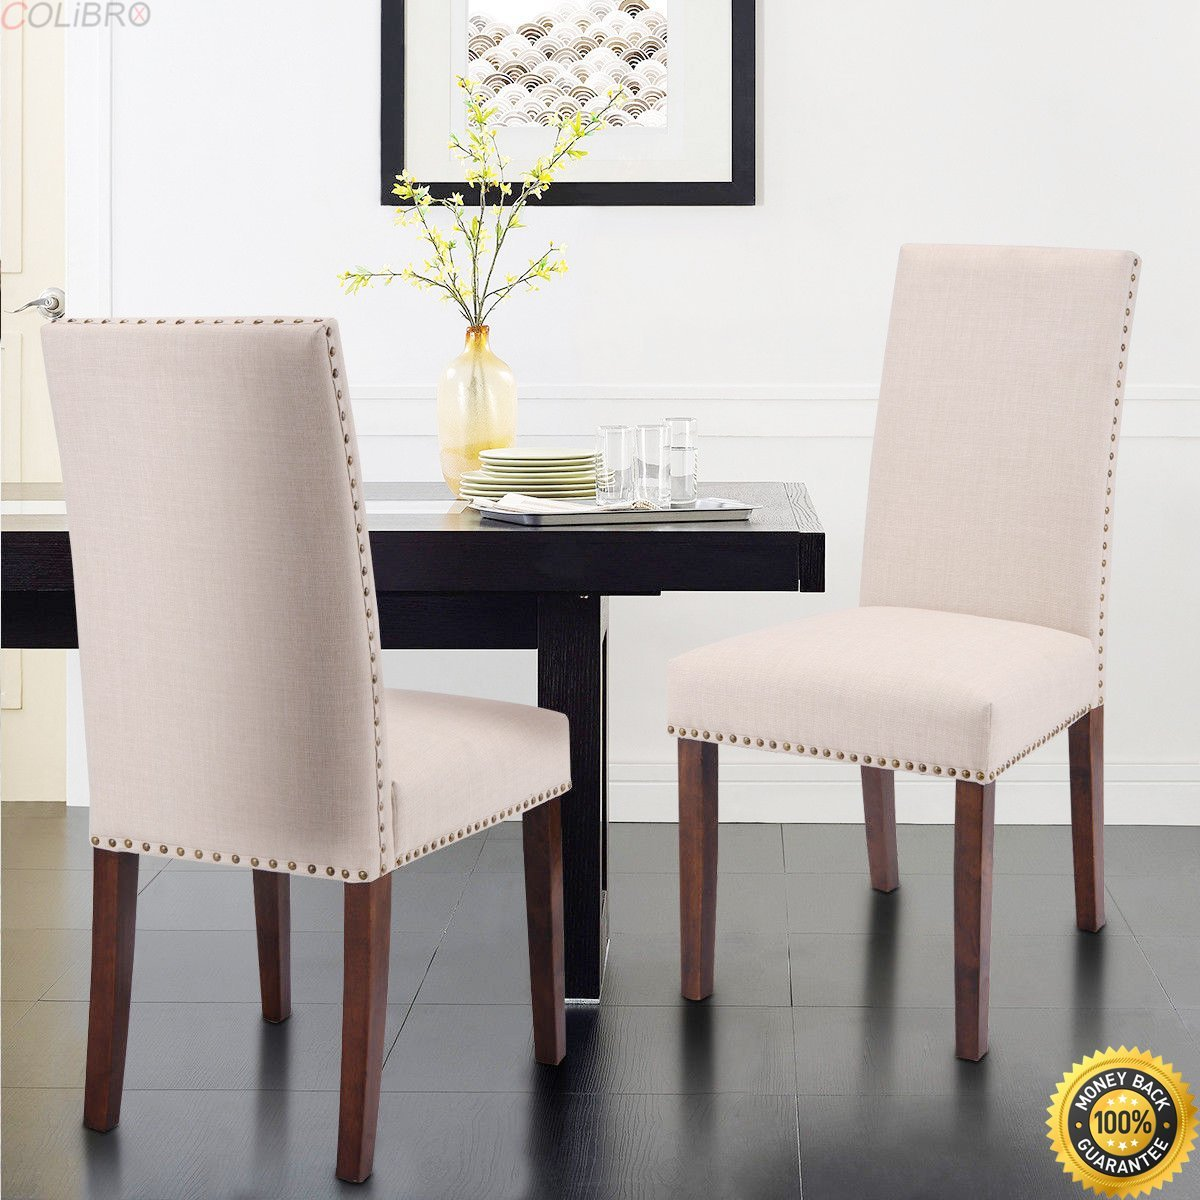 1869a437afa4 COLIBROX--Set of 2 Metal Dining Chairs Upholstered Home Kitchen Side Chair  Furniture New